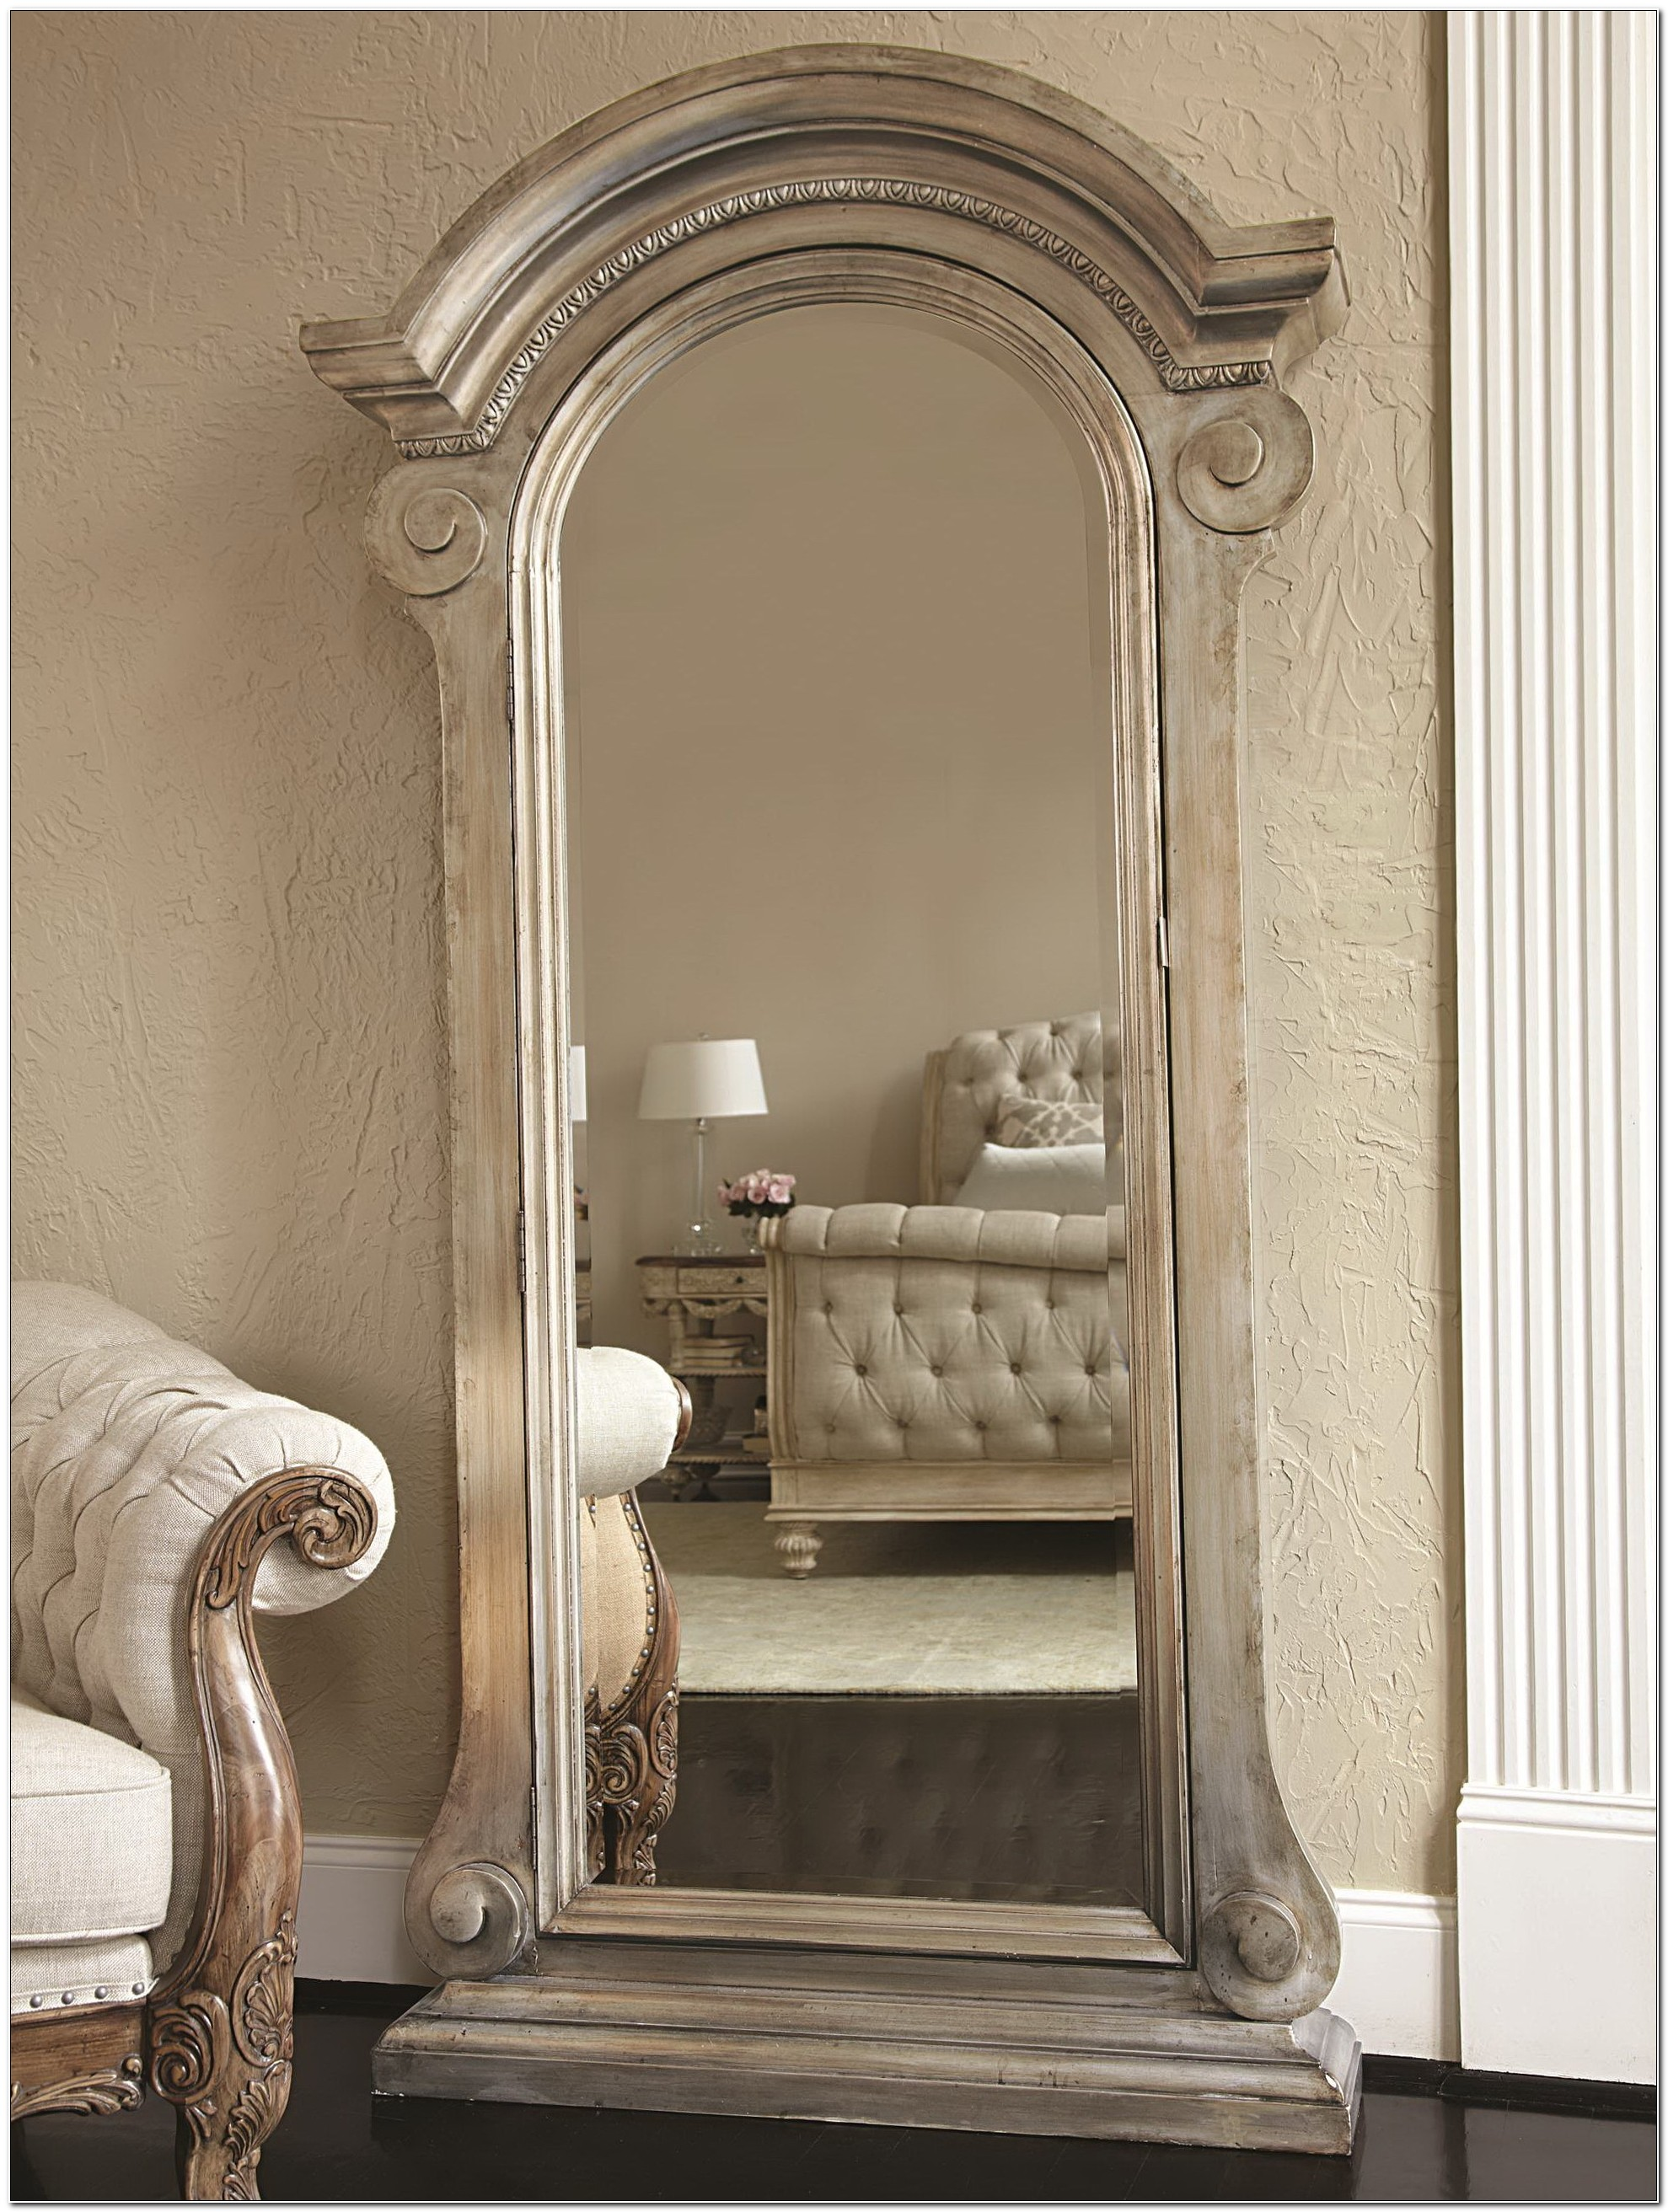 Floor Standing Jewelry Armoire With Mirror